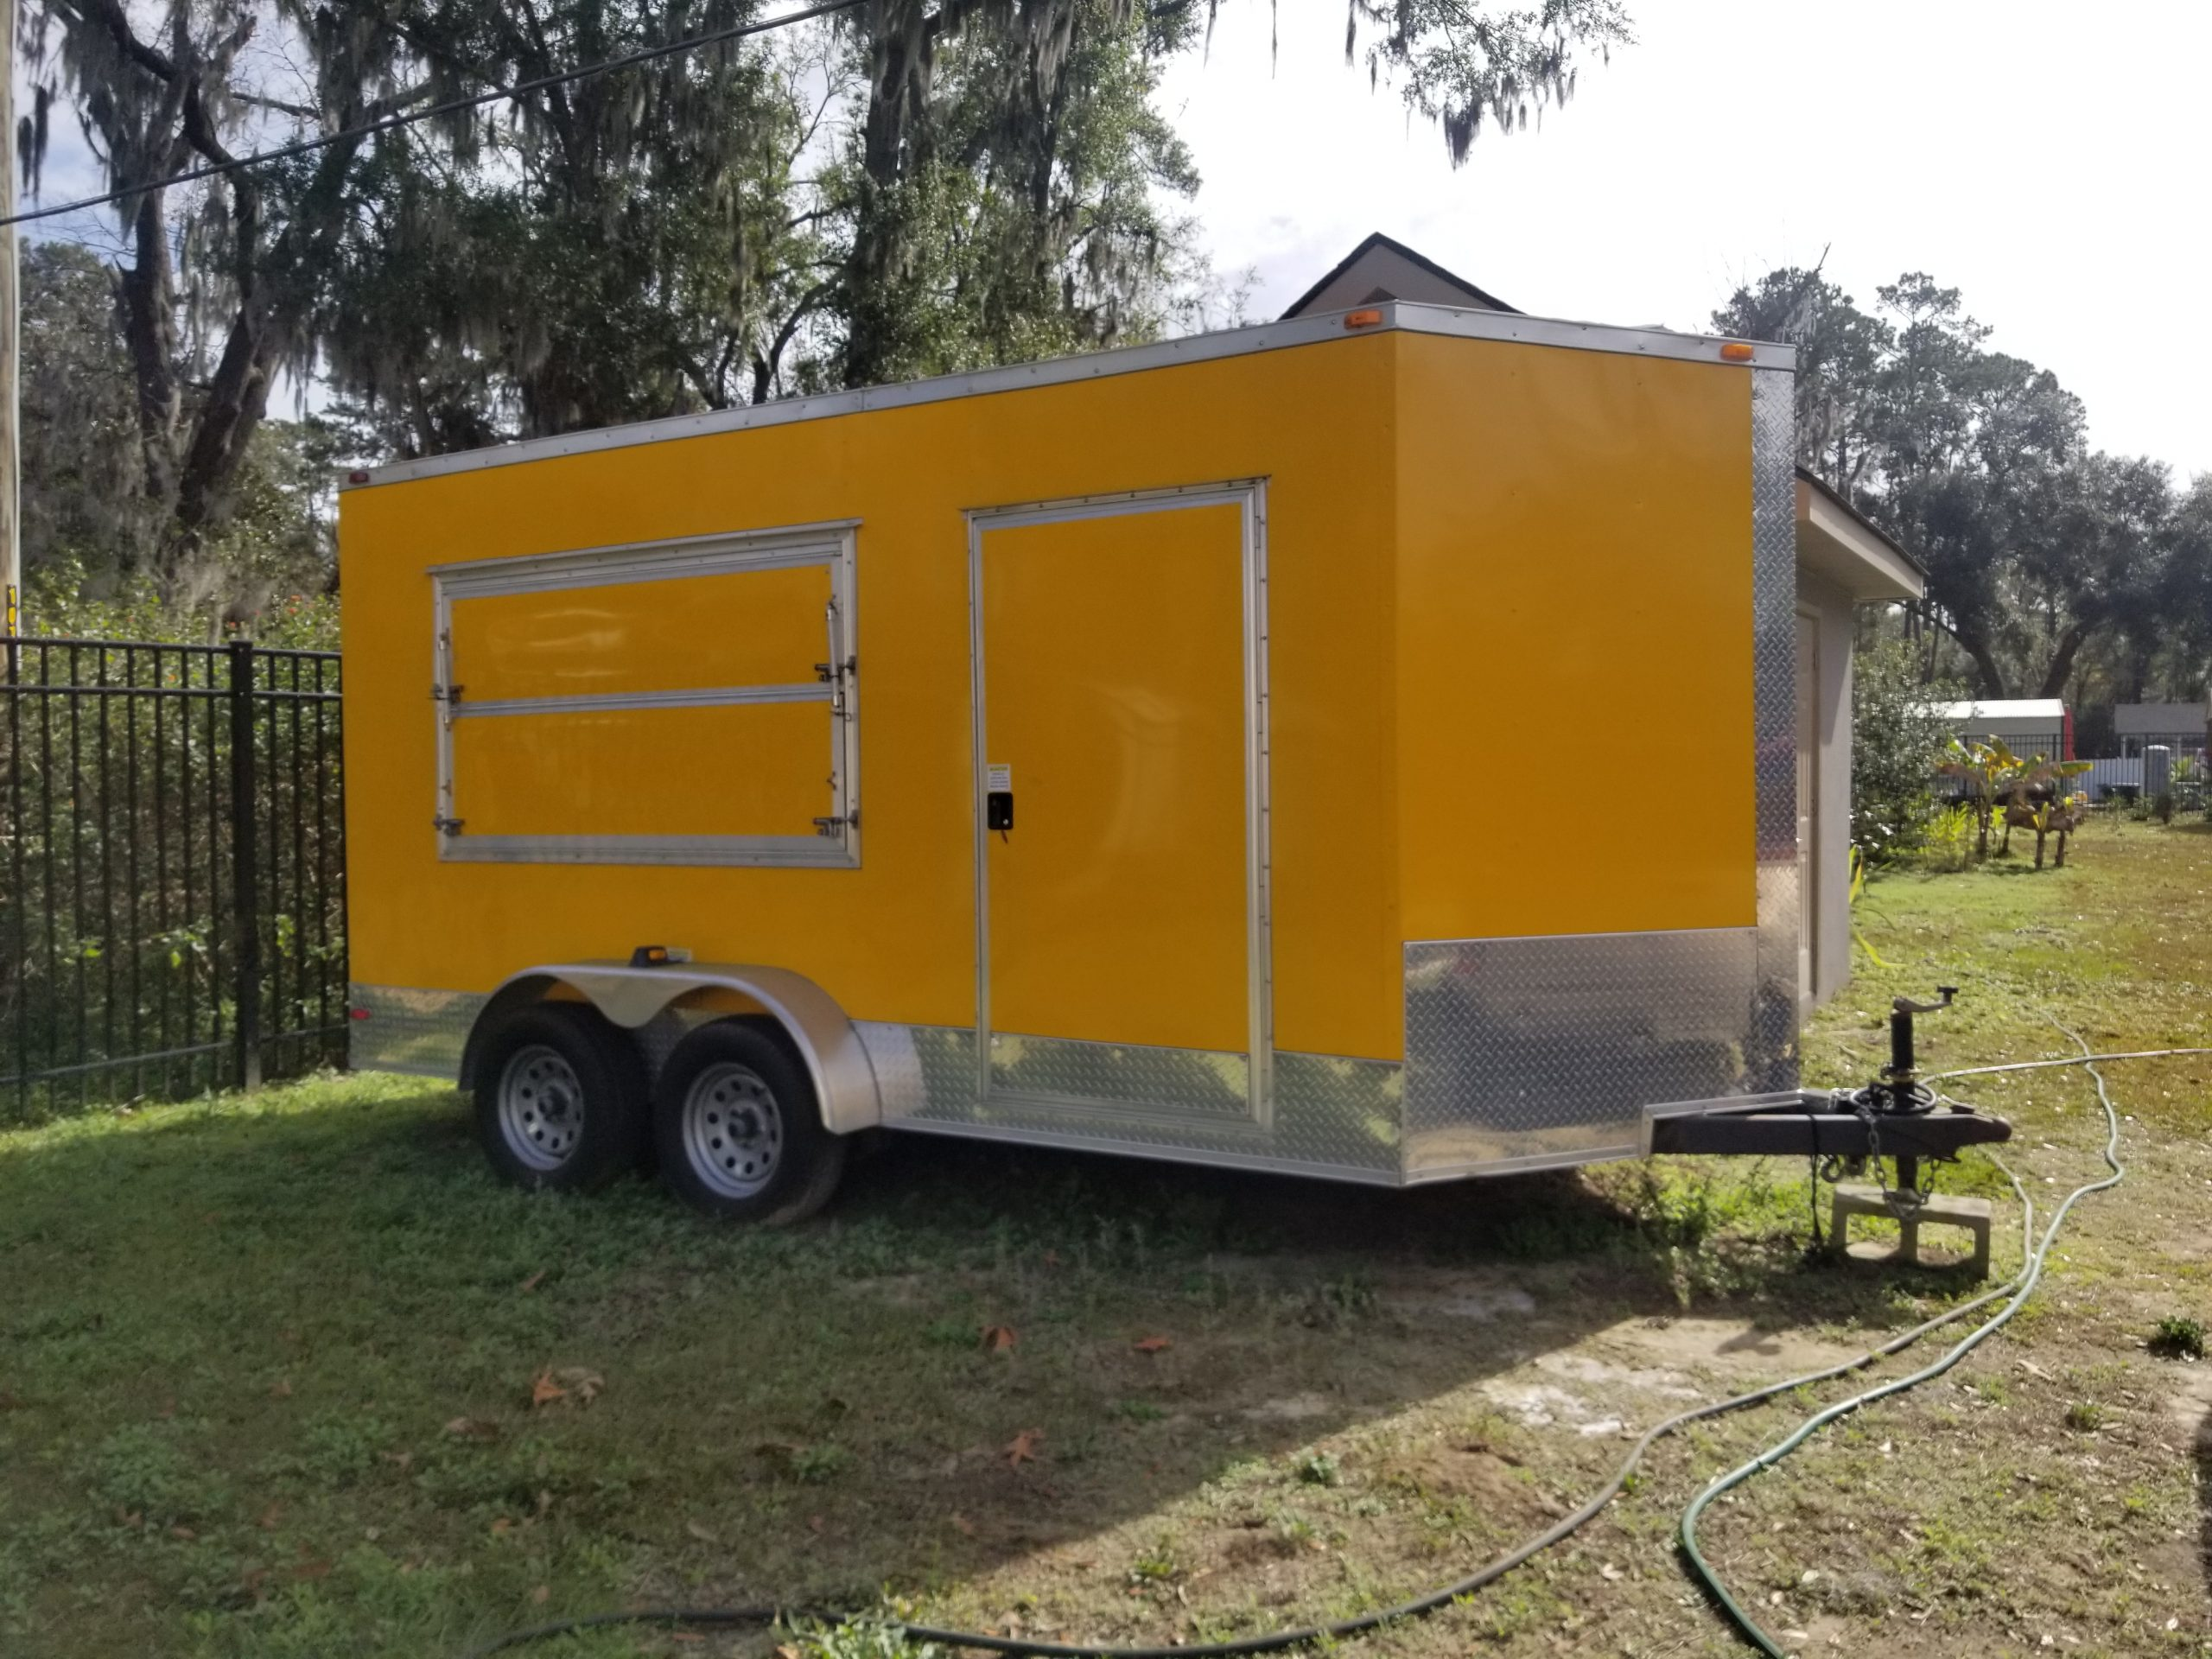 Shaved ice trailer used